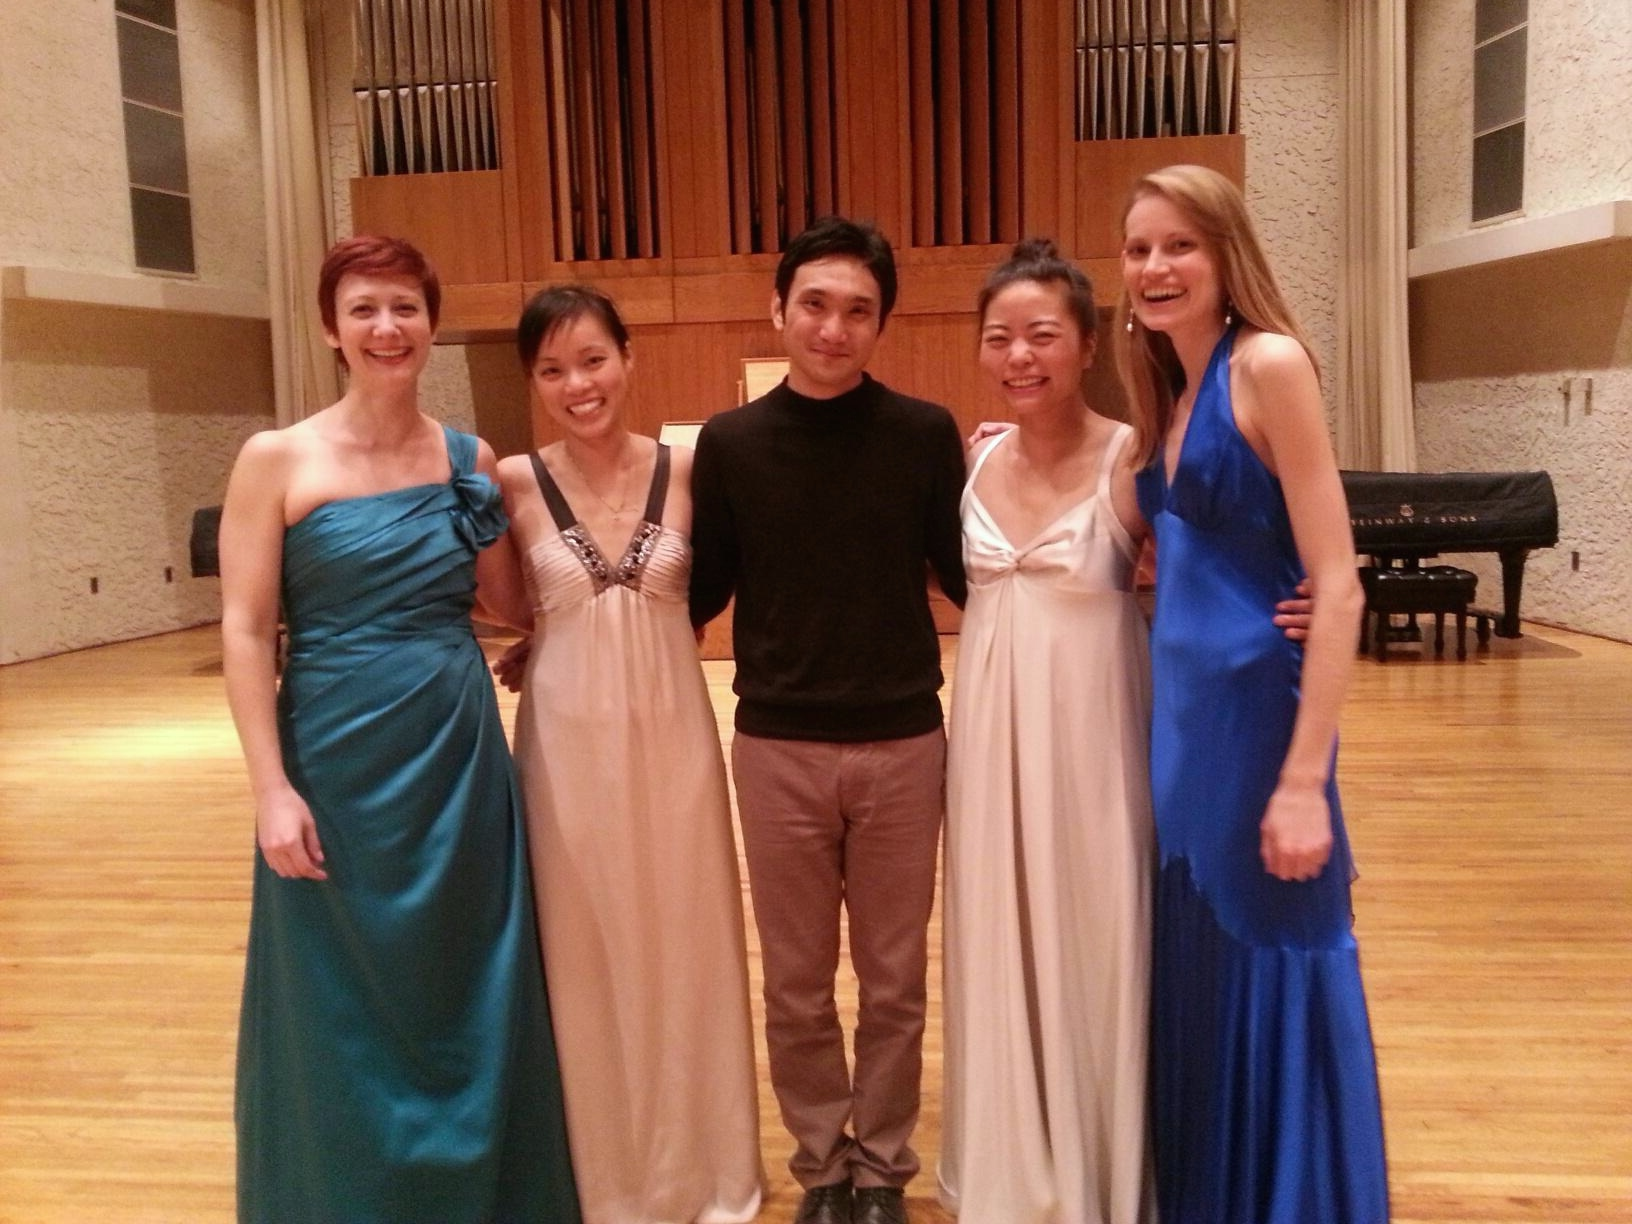 After our concert at Middle Tennessee State University last week